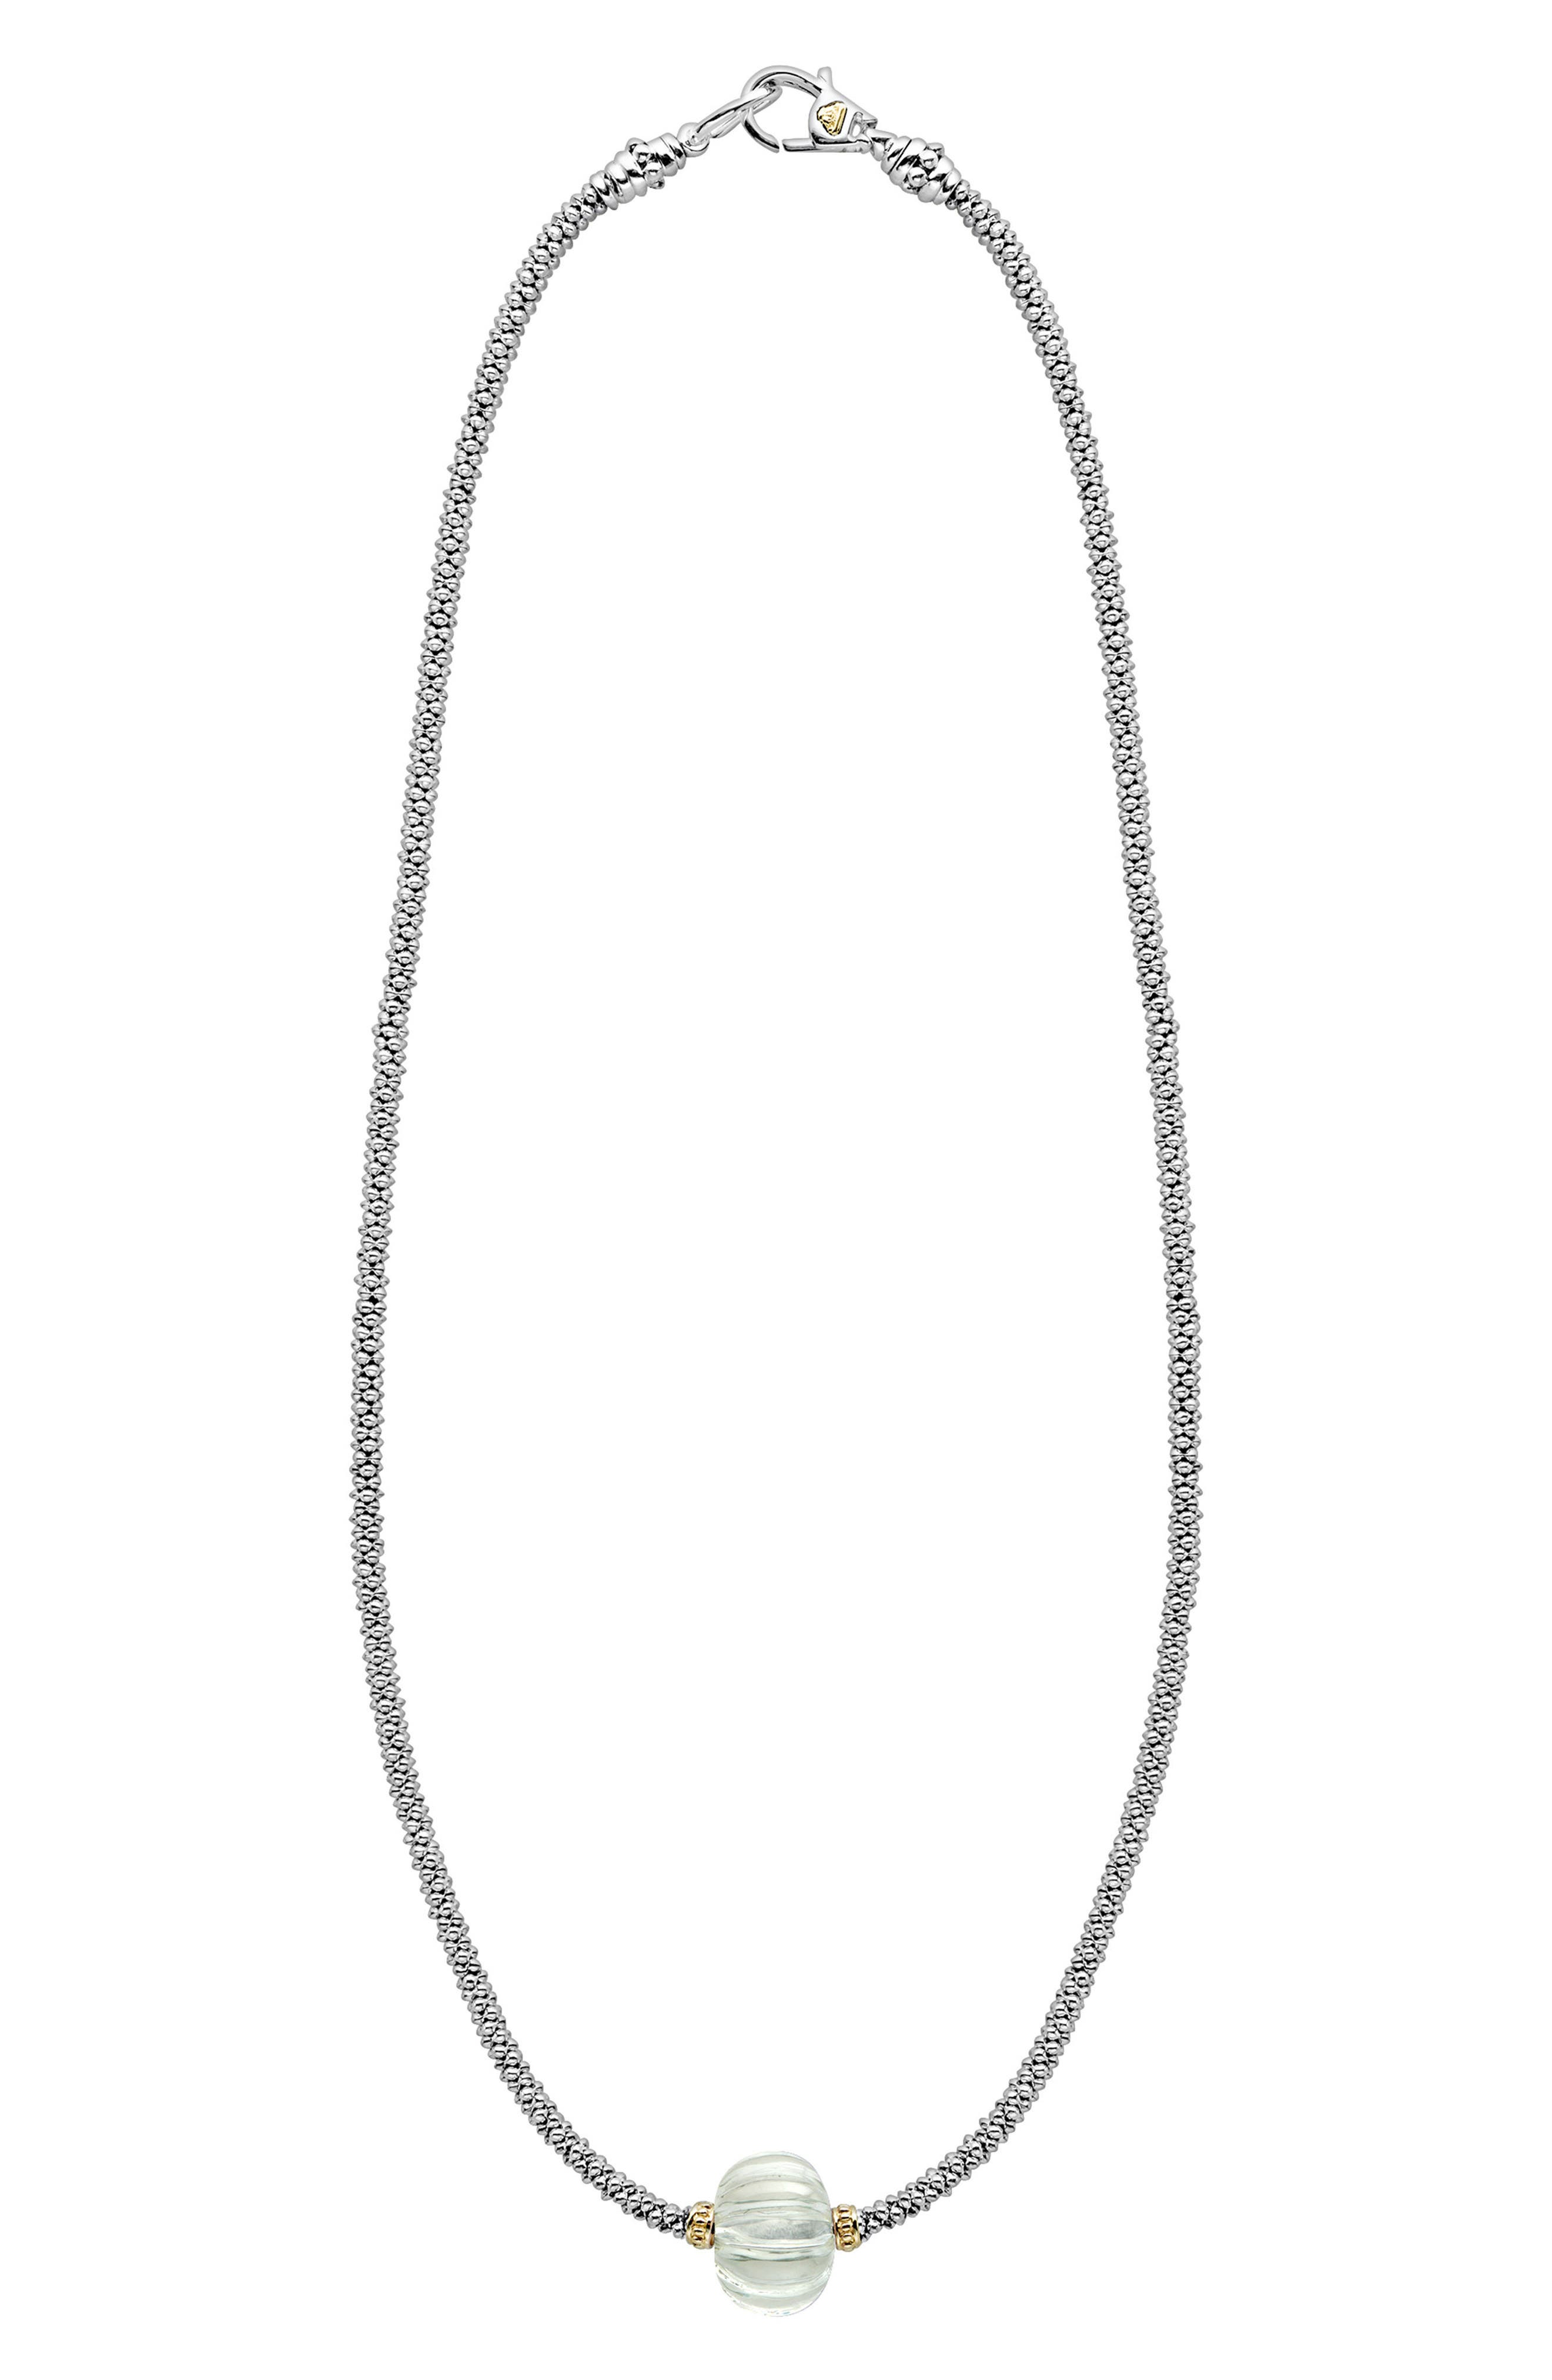 Caviar Forever Melon Bead Rope Necklace,                             Main thumbnail 1, color,                             300